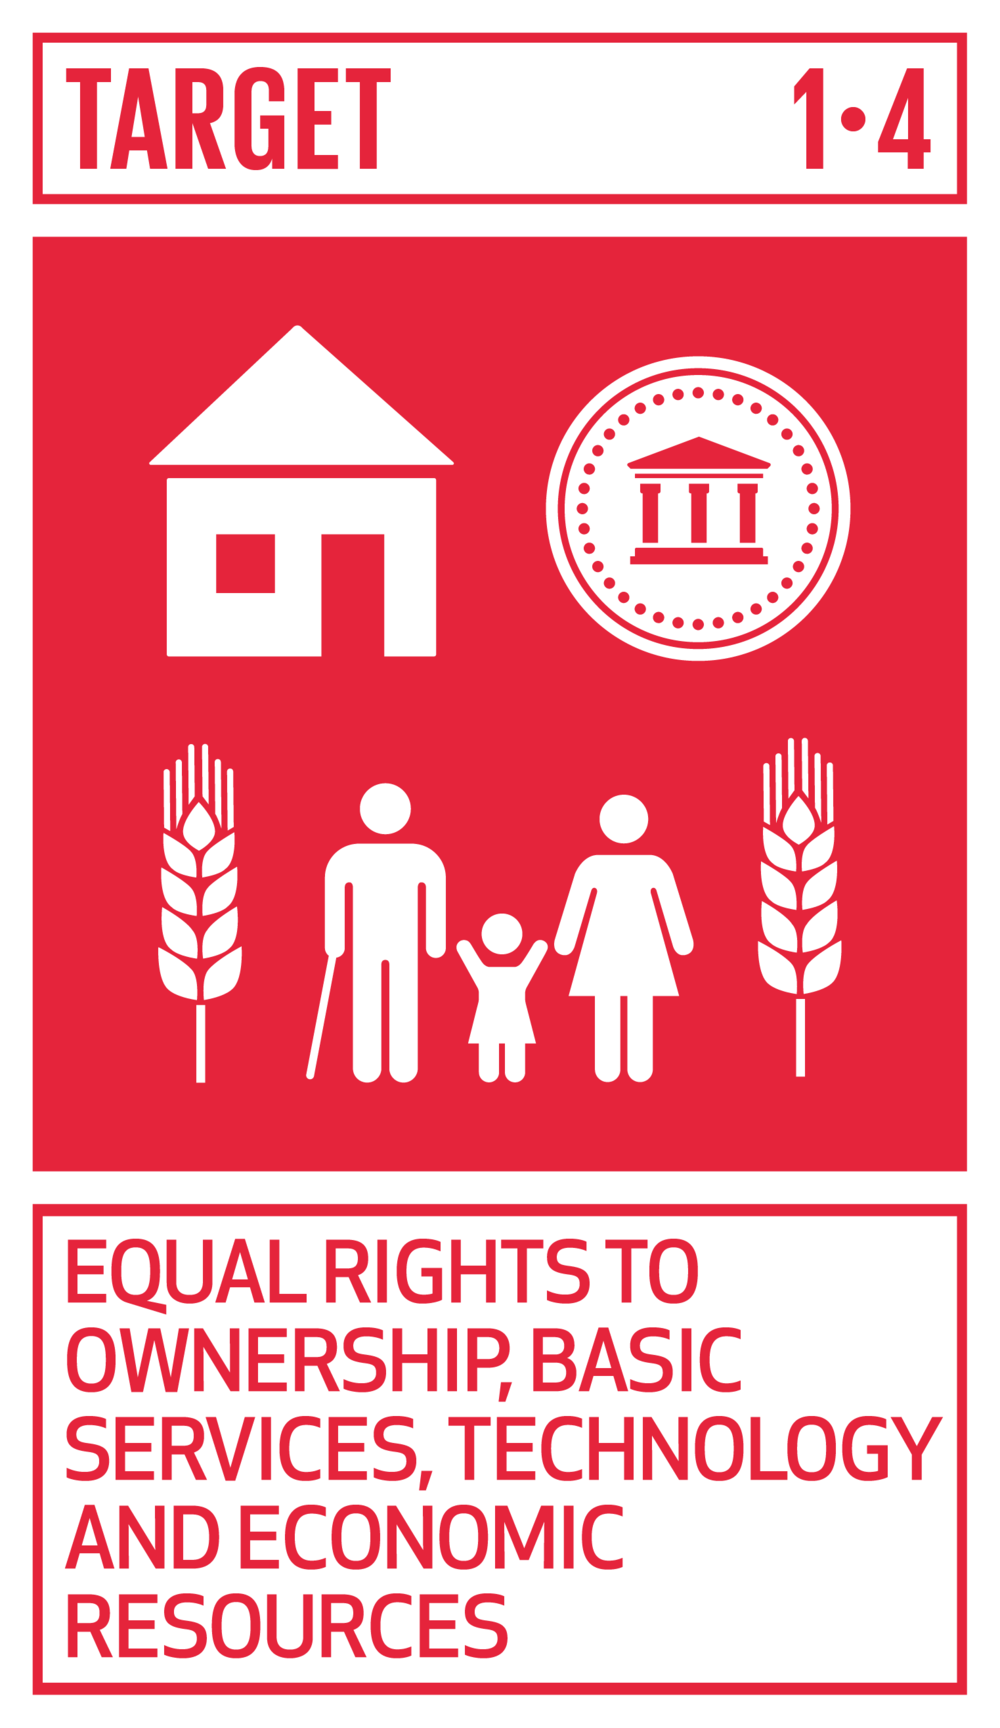 By 2030, ensure that all men and women, in particular the poor and the vulnerable, have equal rights to economic resources, as well as access to basic services, ownership and control over land and other forms of property, inheritance, natural resources, appropriate new technology and financial services, including microfinance.   INDICATORS    1.4.1  Proportion of population living in households with access to basic services   1.4.2  Proportion of total adult population with secure tenure rights to land, with legally recognized documentation and who perceive their rights to land as secure, by sex and by type of tenure